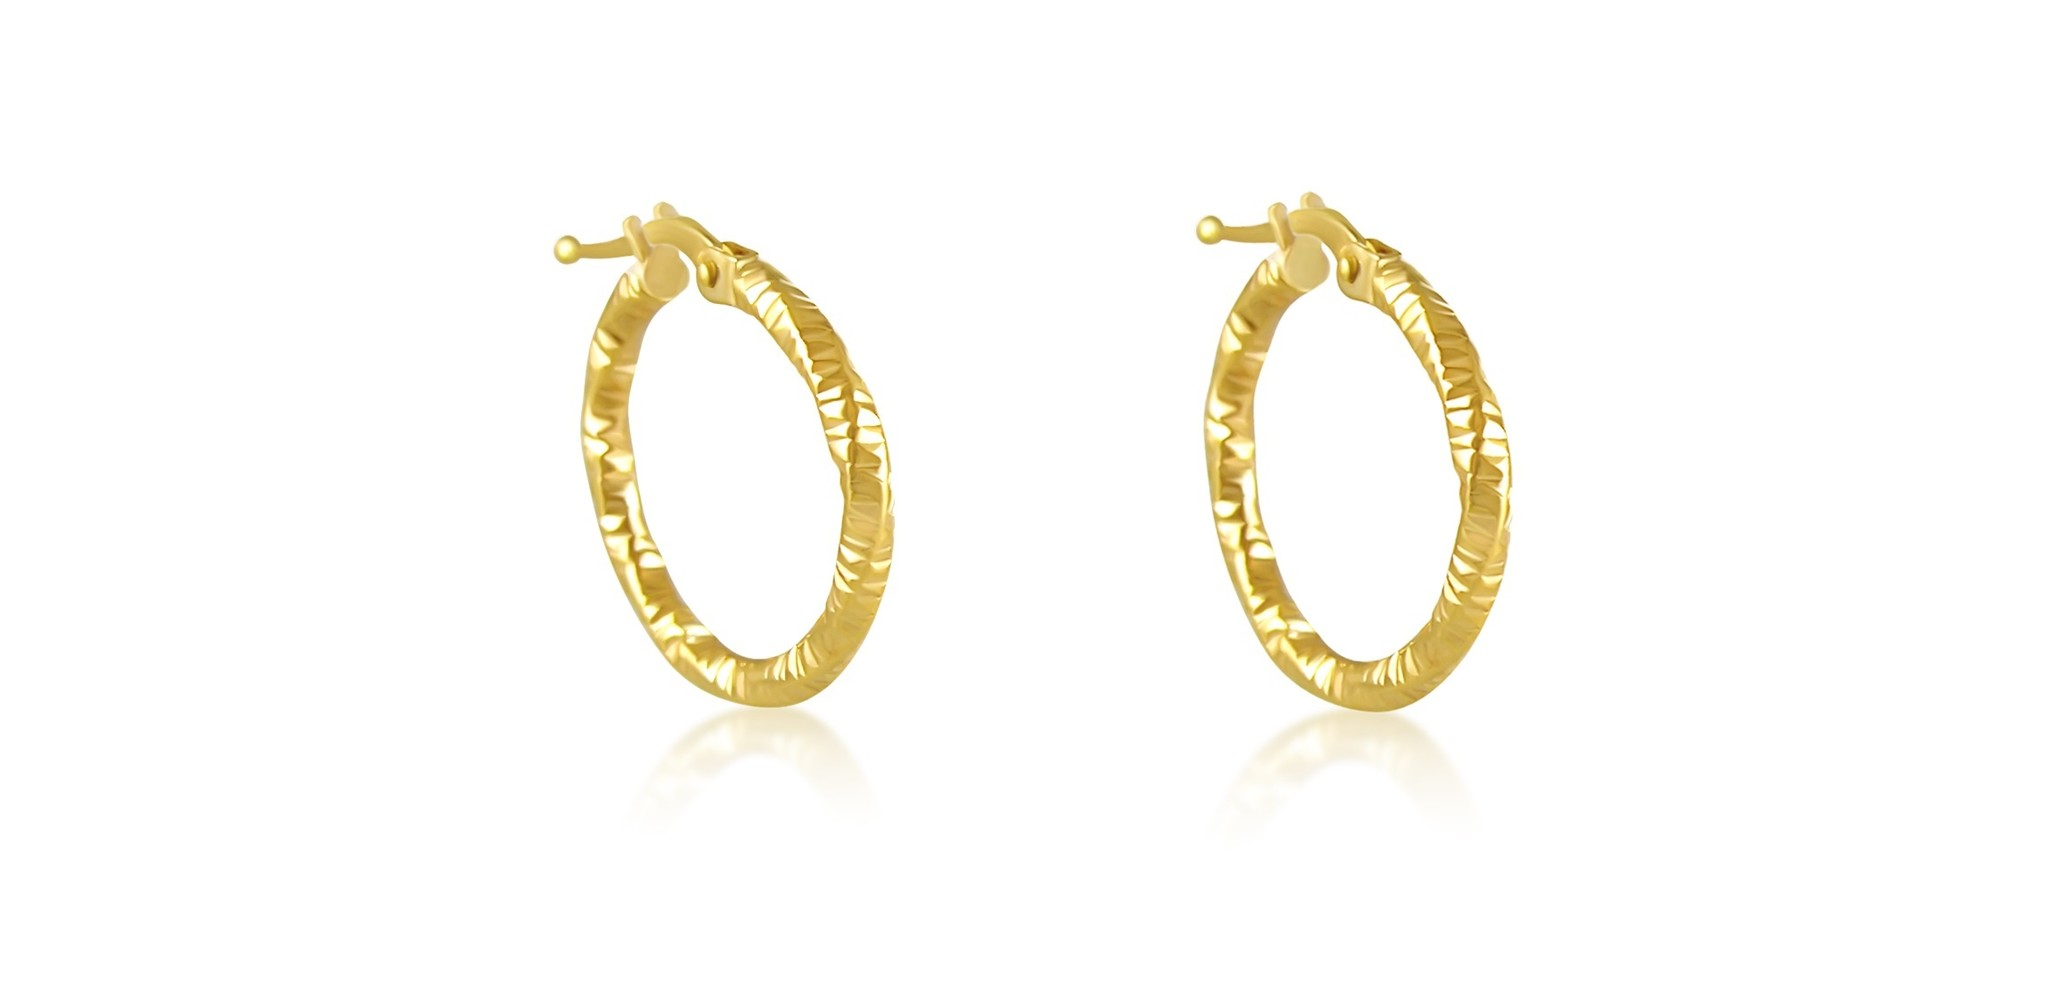 401a51bdf062c 18 karat yellow gold earrings